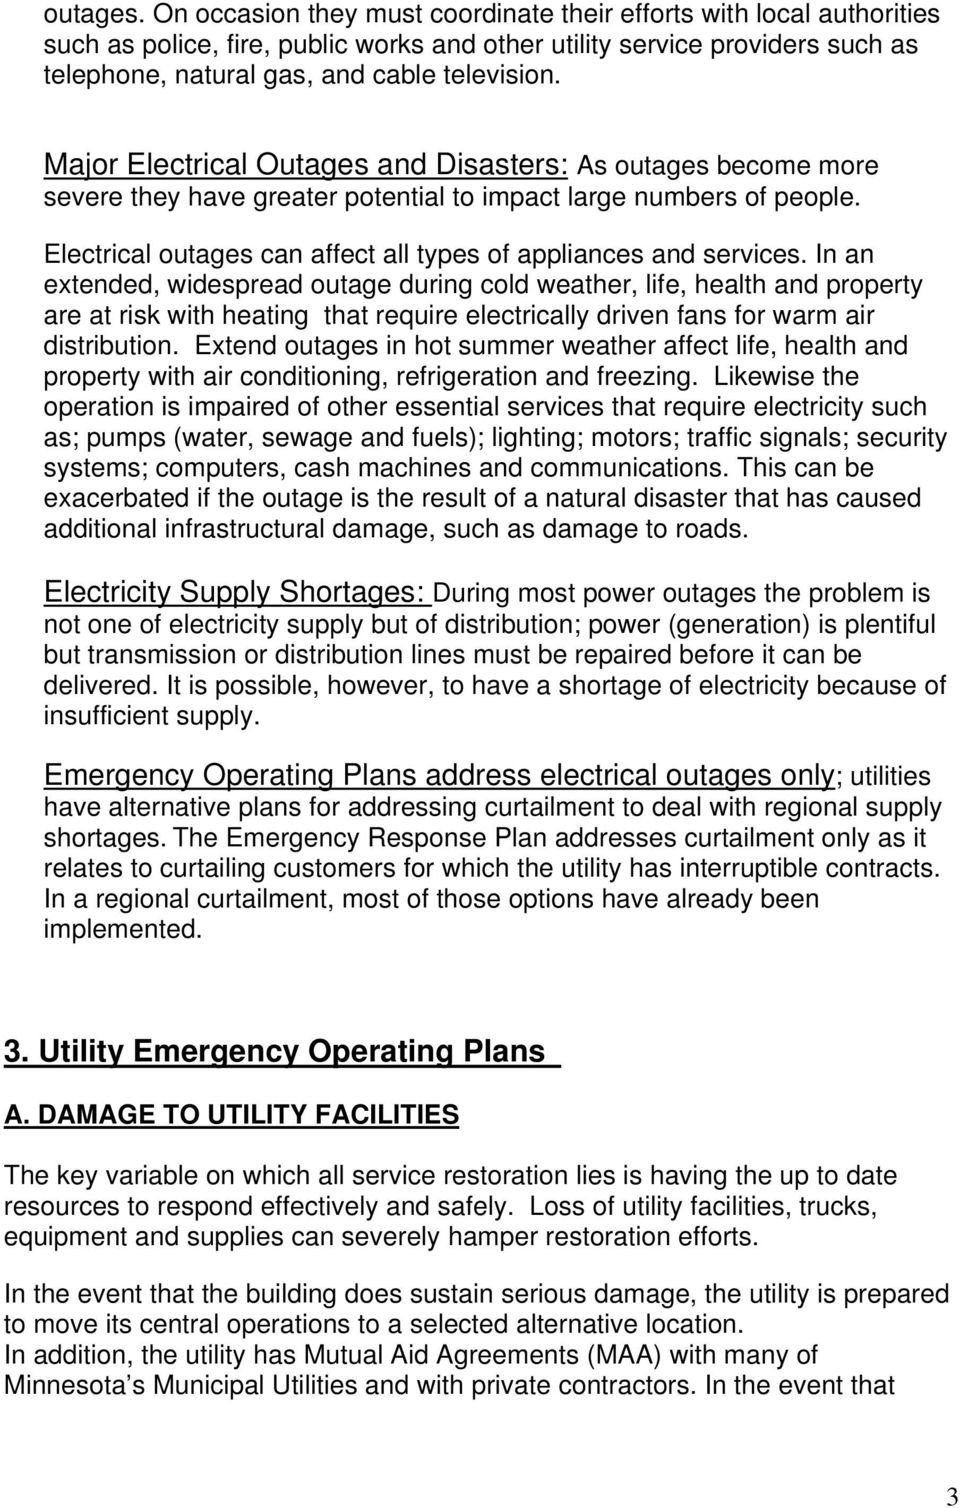 Major Electrical Outages and Disasters: As outages become more severe they have greater potential to impact large numbers of people. Electrical outages can affect all types of appliances and services.